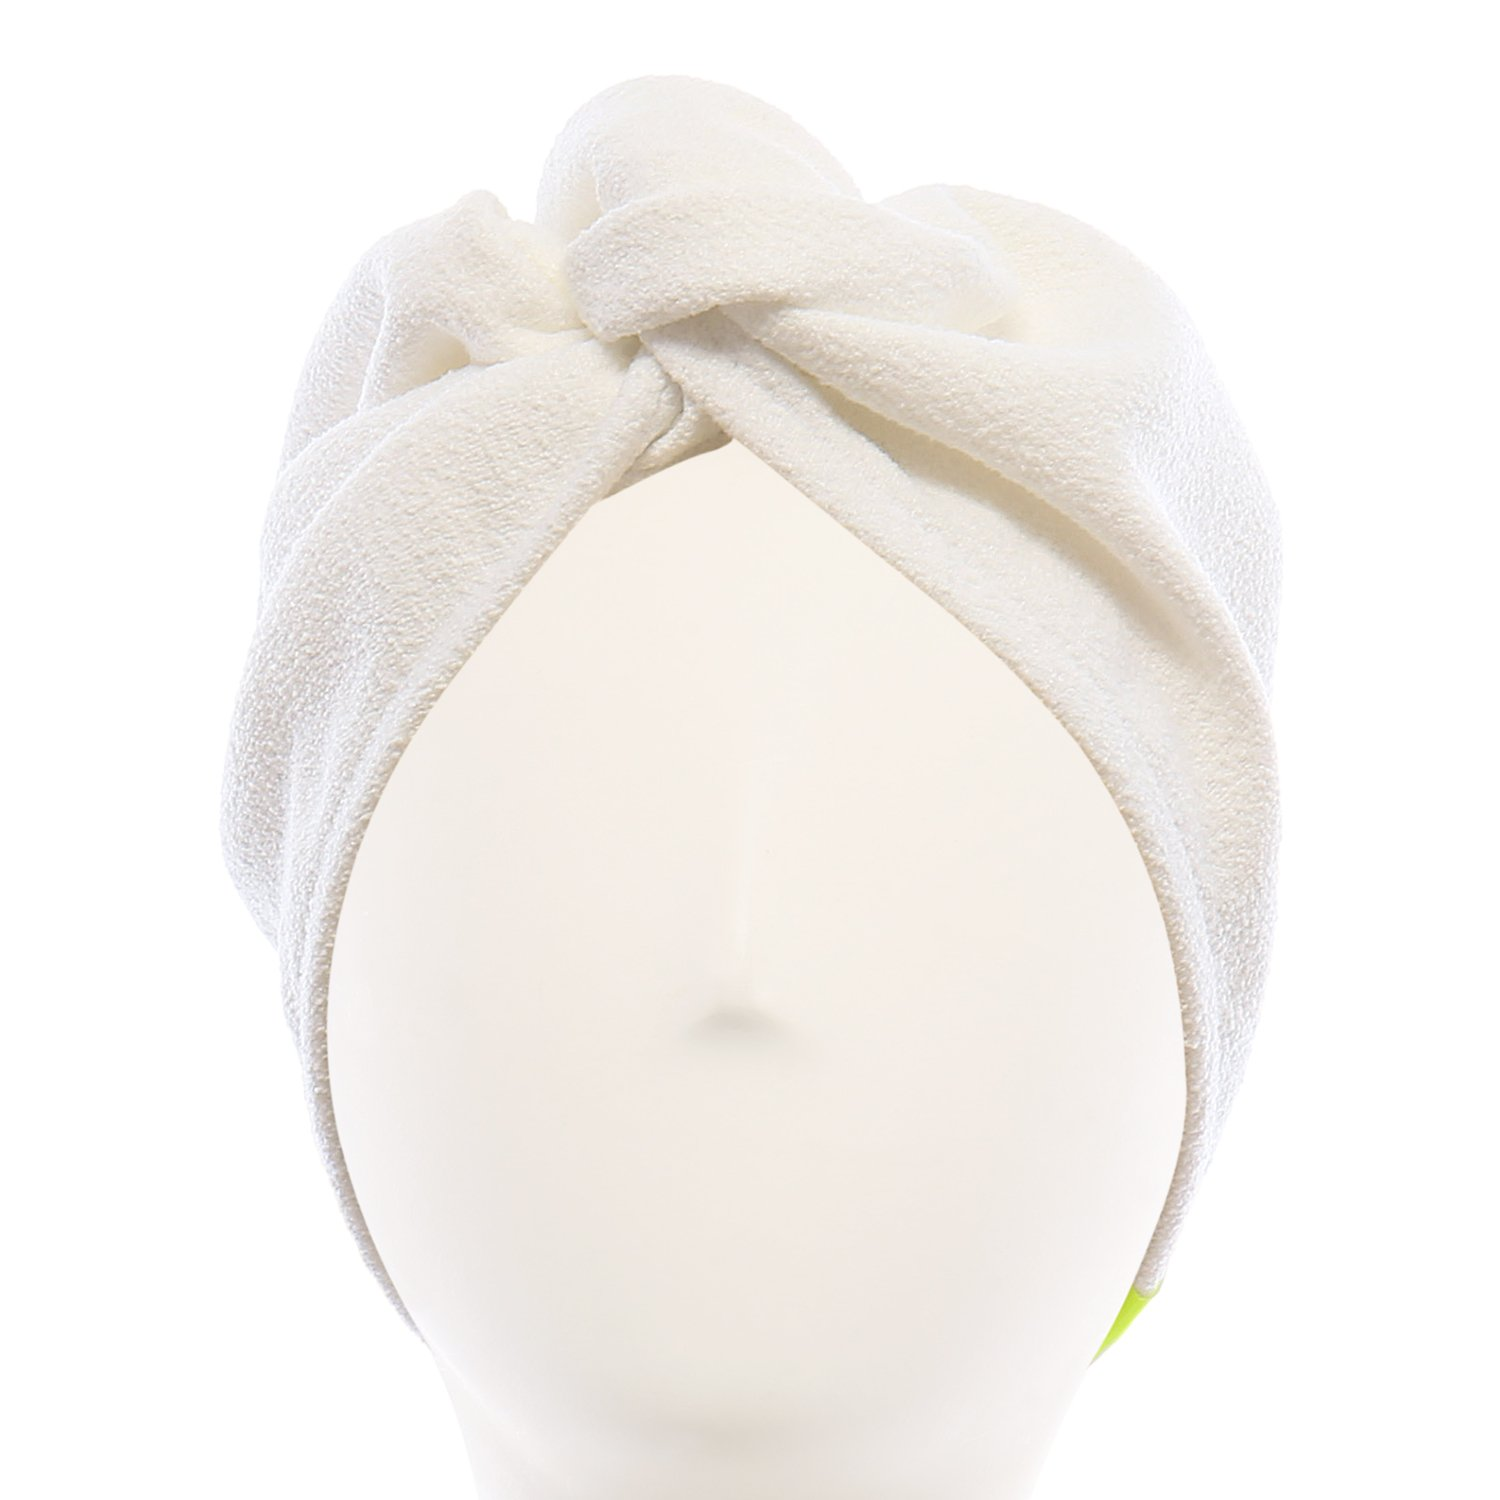 Aquis - Original Hair TURBAN, Patented Perfect Hands-Free Microfiber Hair Drying, White (10 x 26 Inches) by AQUIS